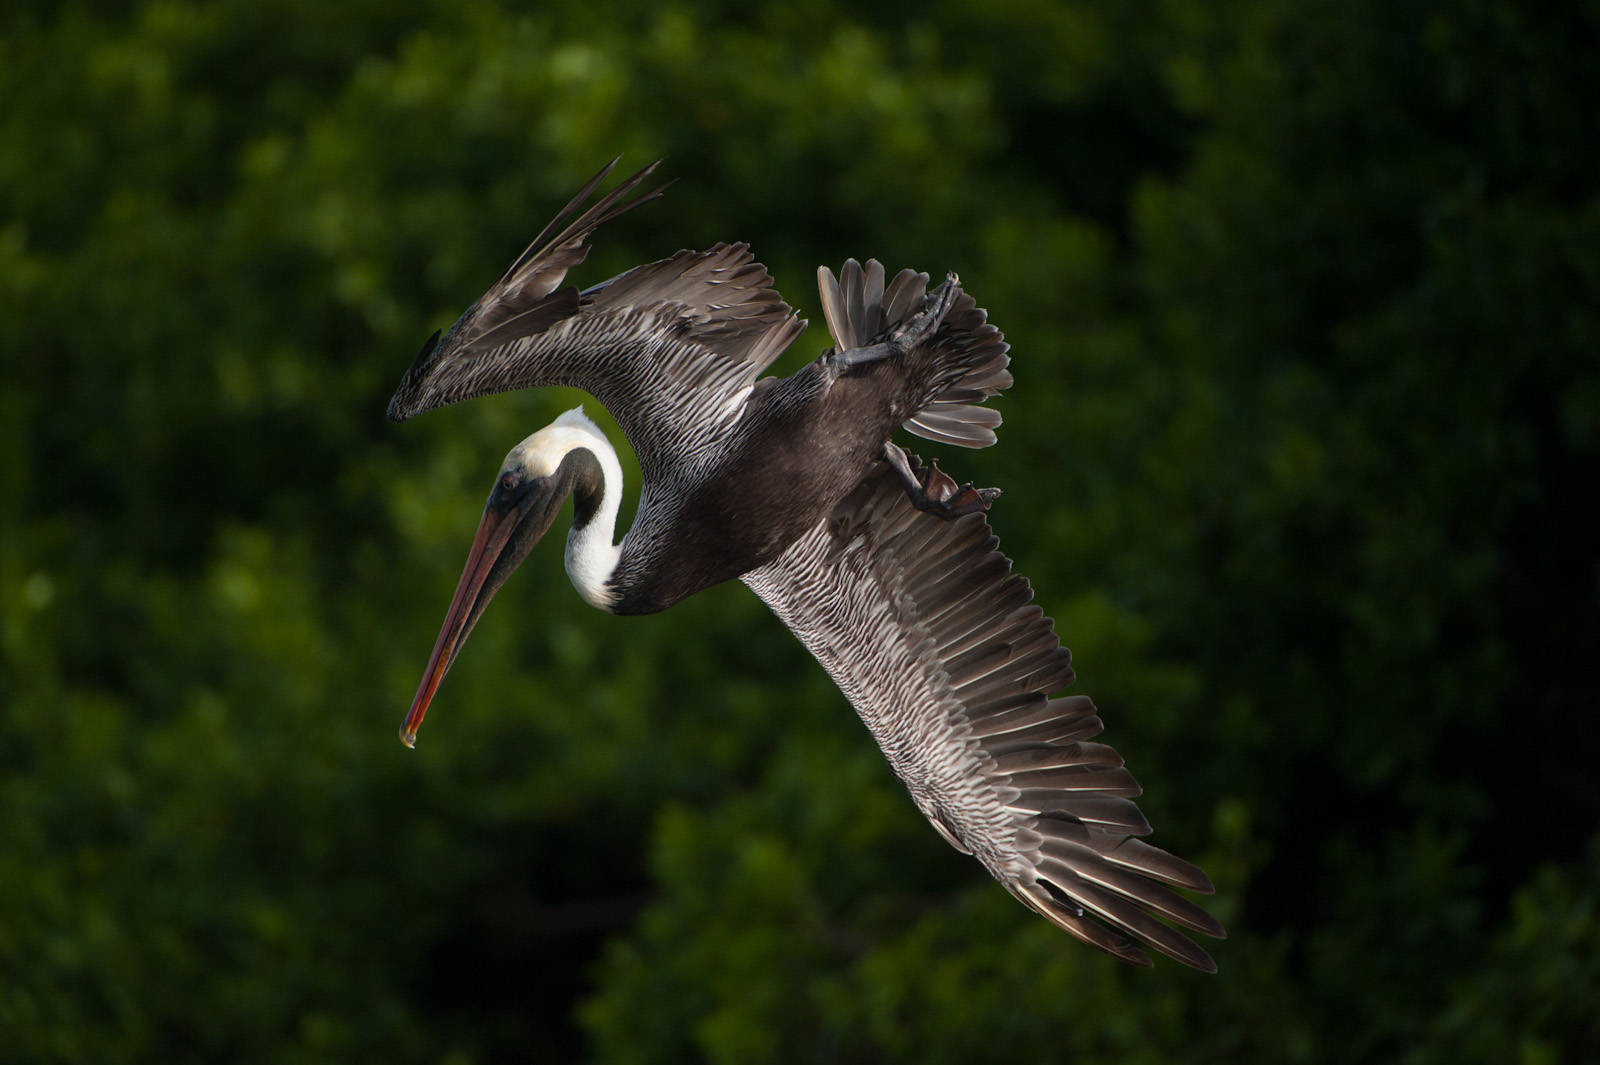 A brown pelican (Pelecanus occidentalis) preparing to dive for fish at Tagus Cove in Galapagos National Park.